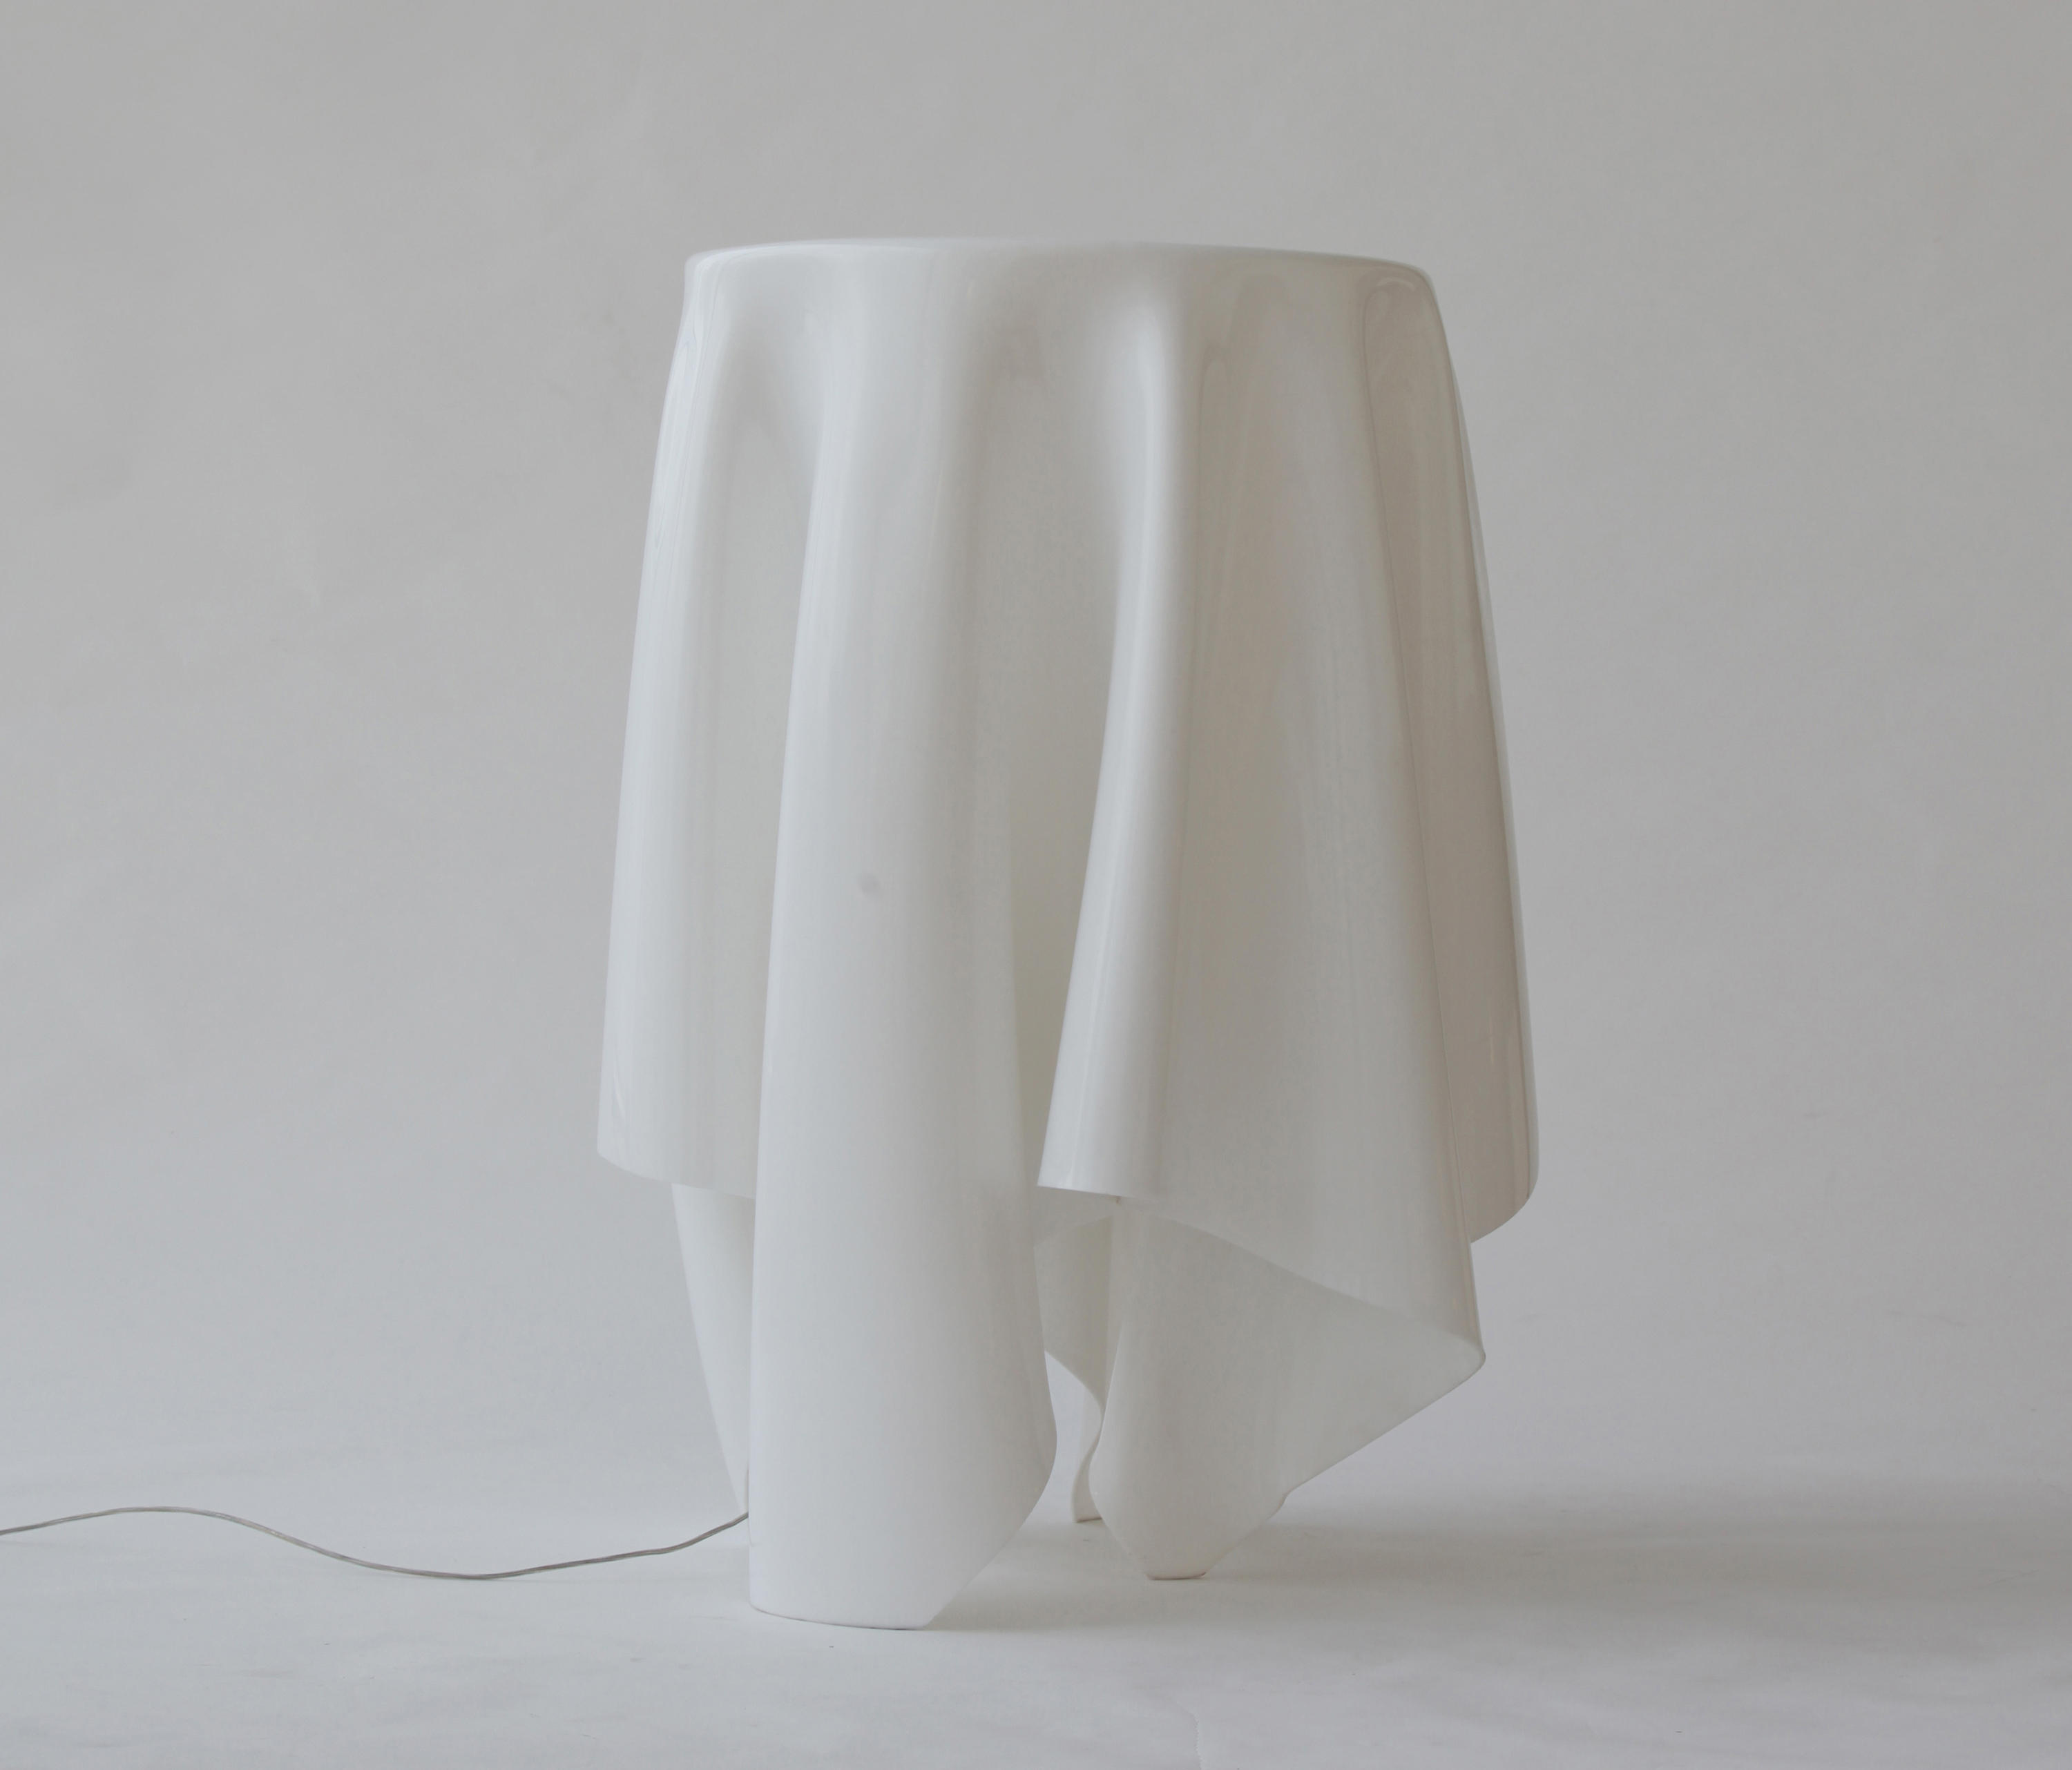 ... Tablecloth by Eden Design   Lighting objects ... & TABLECLOTH - Lighting objects from Eden Design   Architonic azcodes.com